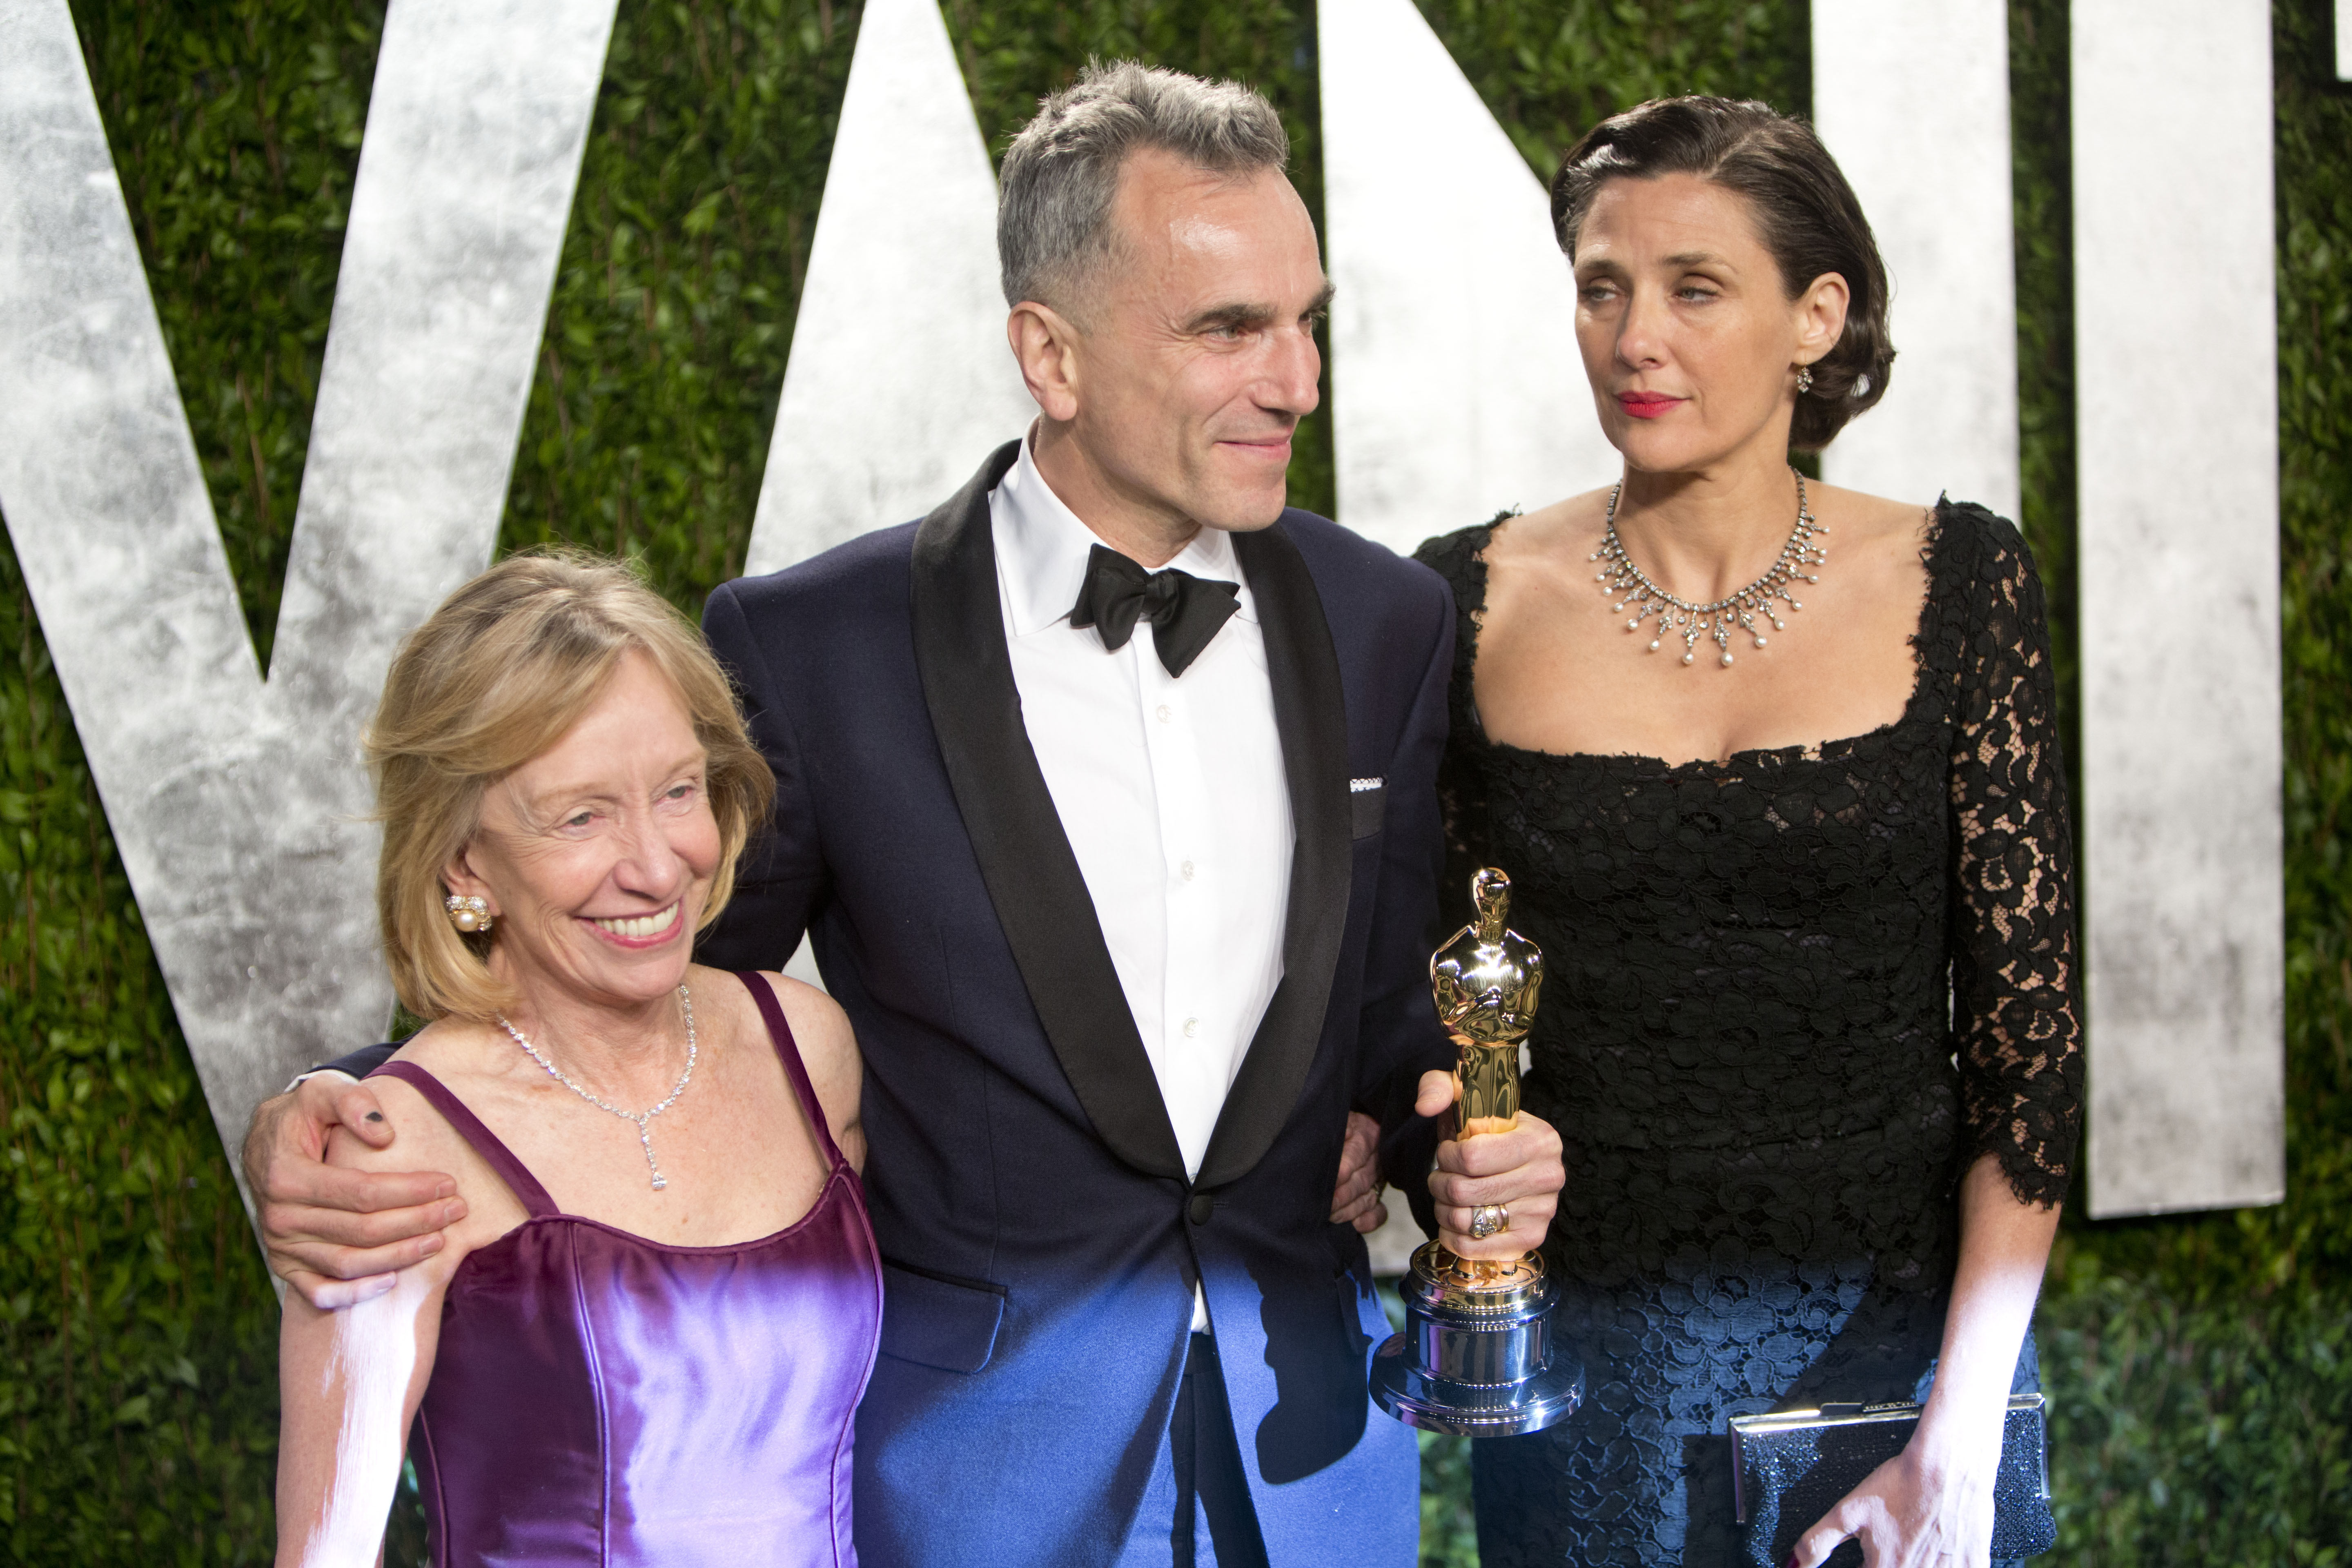 Daniel Day-Lewis posed with his family at the Vanity Fair party.